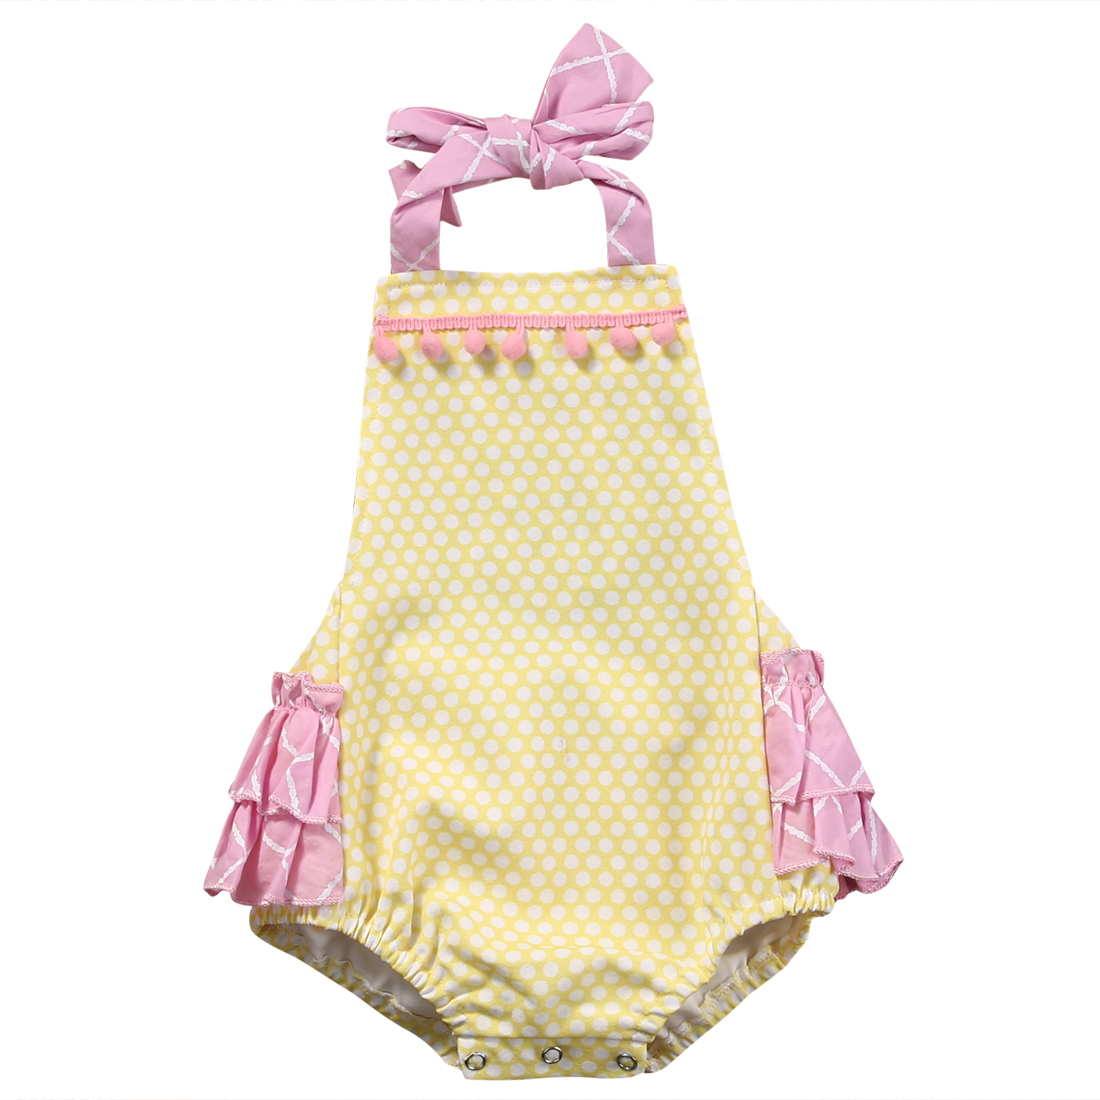 Cute Newborn Baby Girls Sleeveless Yellow Plaid Ruffle Romper Jumpsuit Clothes Outfits Sunsuit puseky 2017 infant romper baby boys girls jumpsuit newborn bebe clothing hooded toddler baby clothes cute panda romper costumes